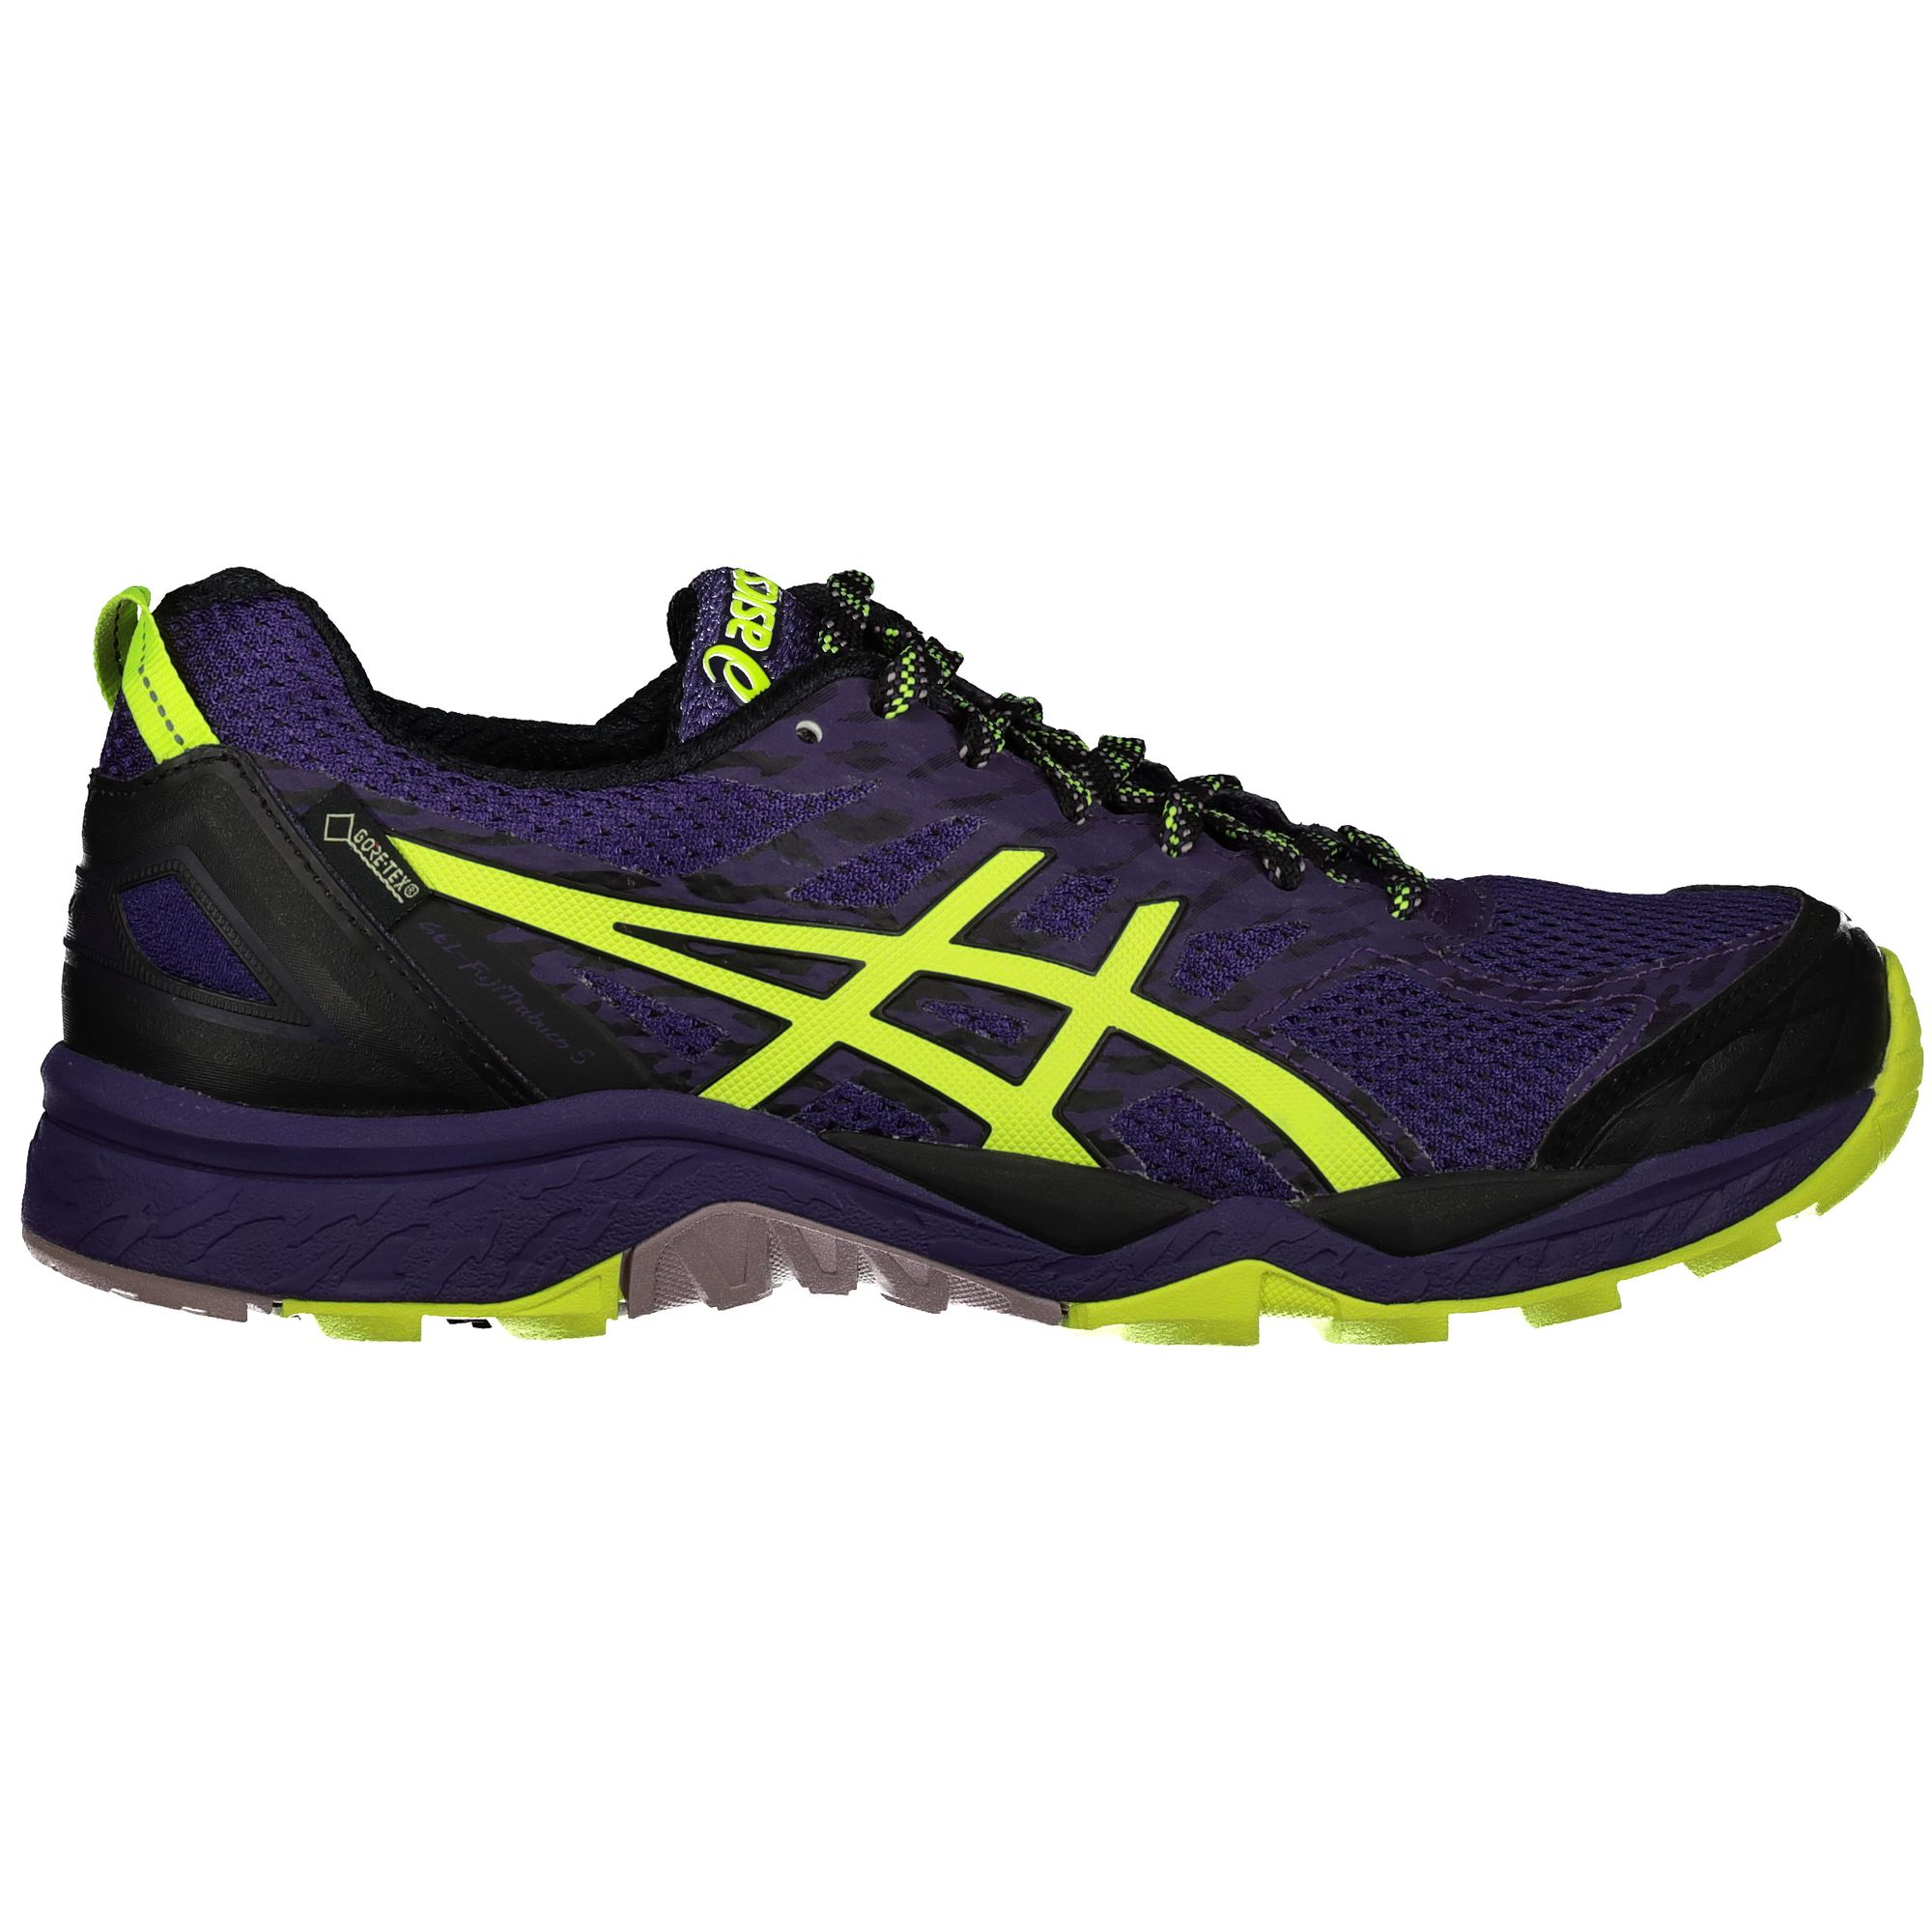 asics damen laufschuhe gel fuji trabuco 5 violett women. Black Bedroom Furniture Sets. Home Design Ideas